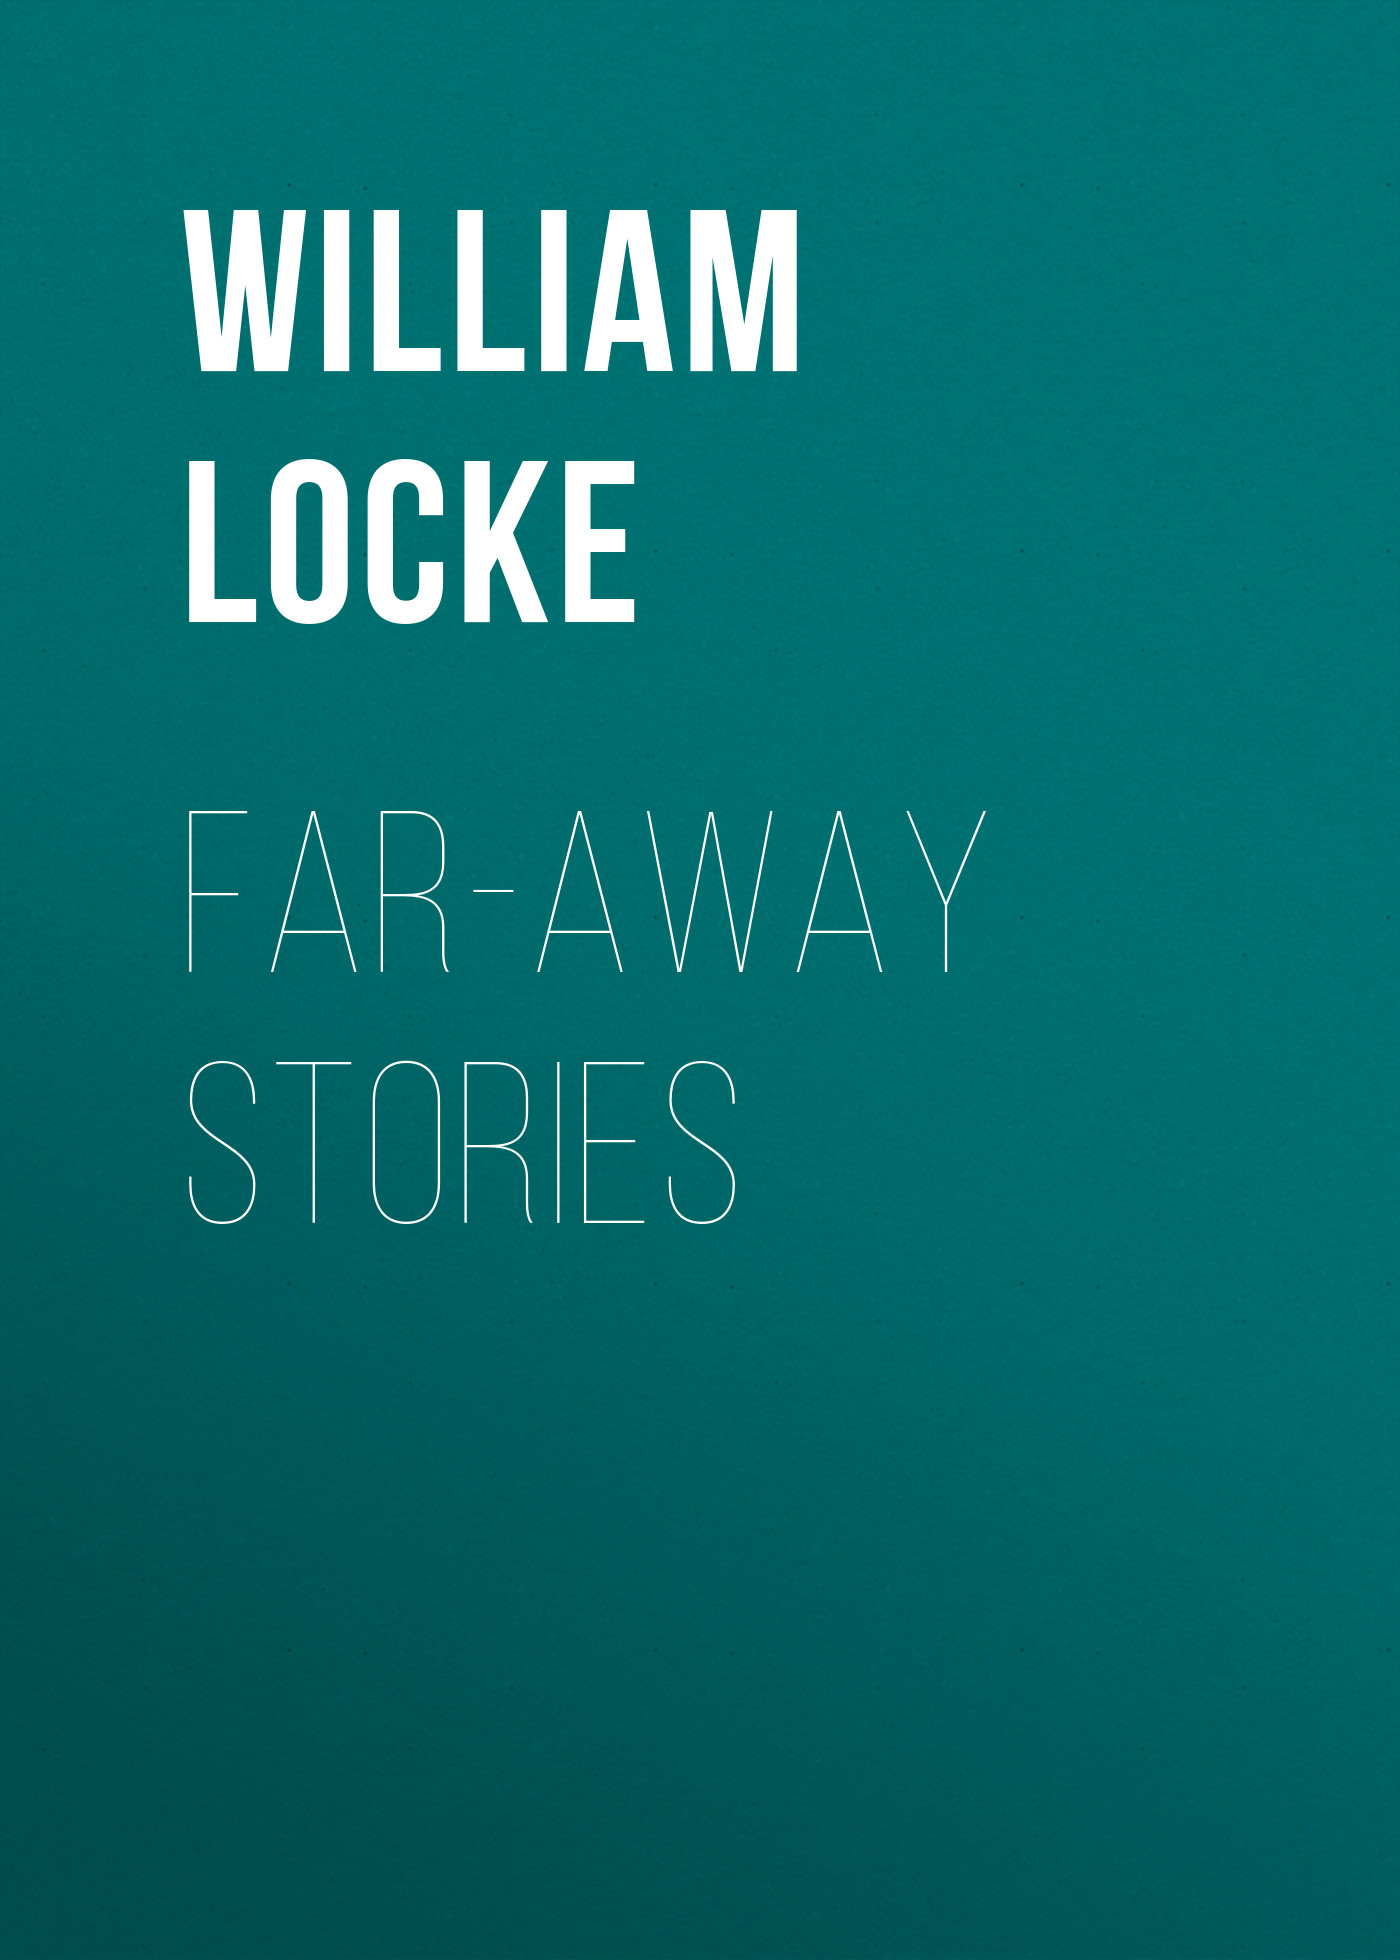 Locke William John Far-away Stories петух kelly s cross алюминий 6061 2012 derailleur hanger cross aluminum 6061 alloy 2012